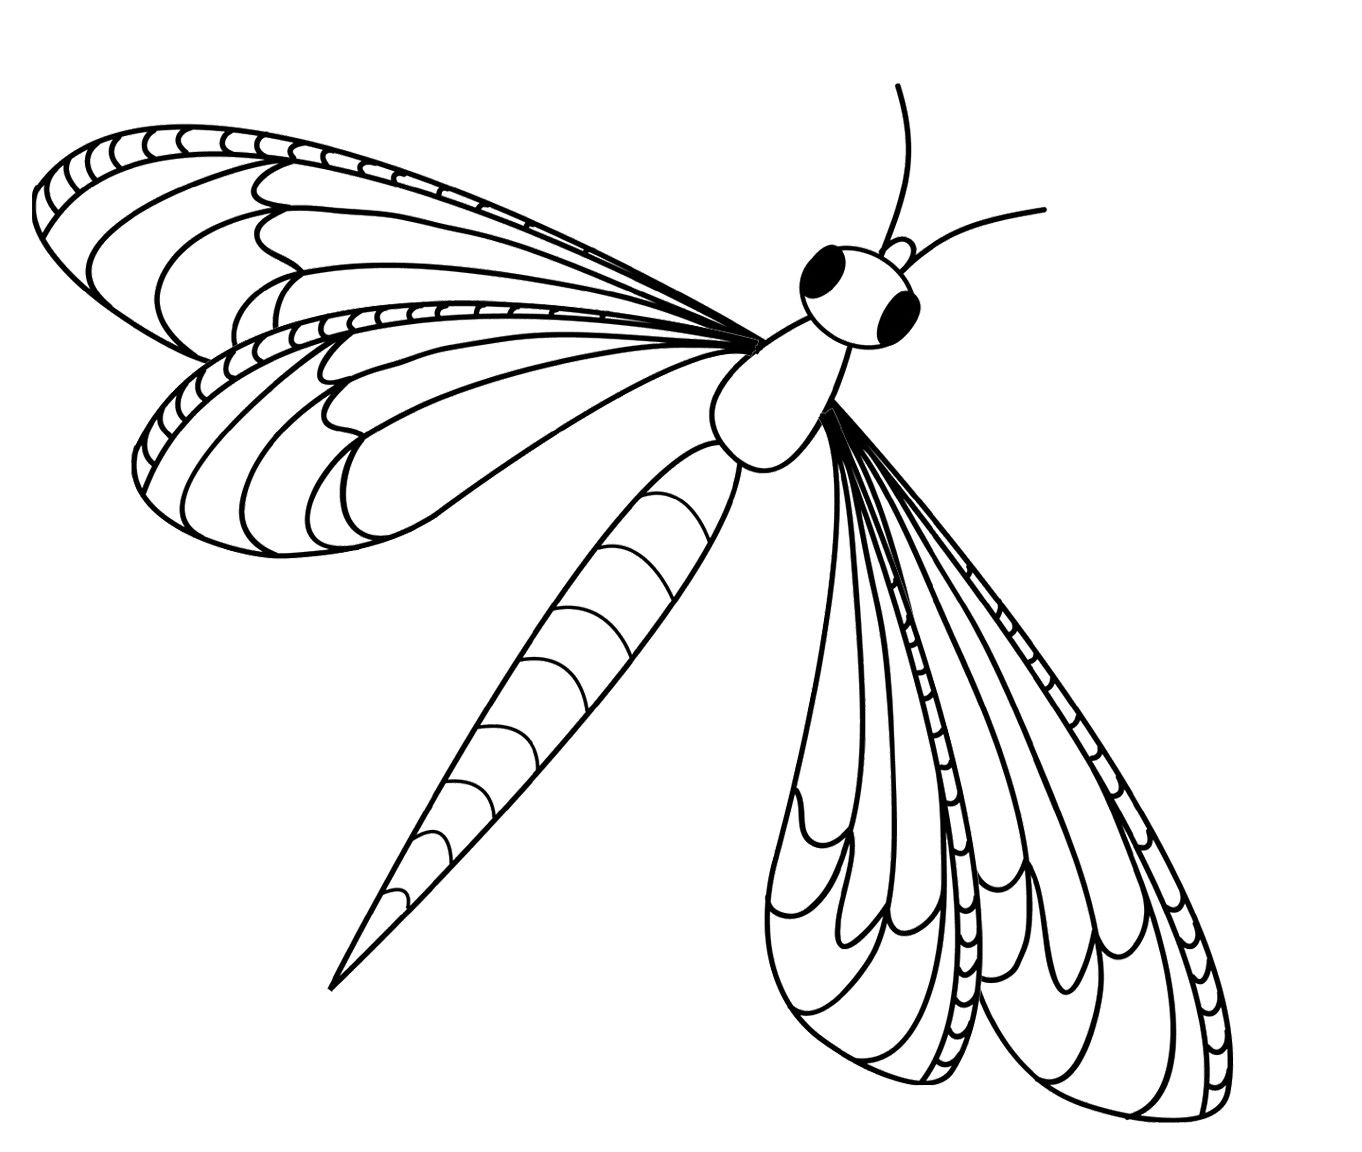 Dragonfly Coloring Pages My Coloring Pages Coloring Pages Dragonfly Artwork Dragon Images